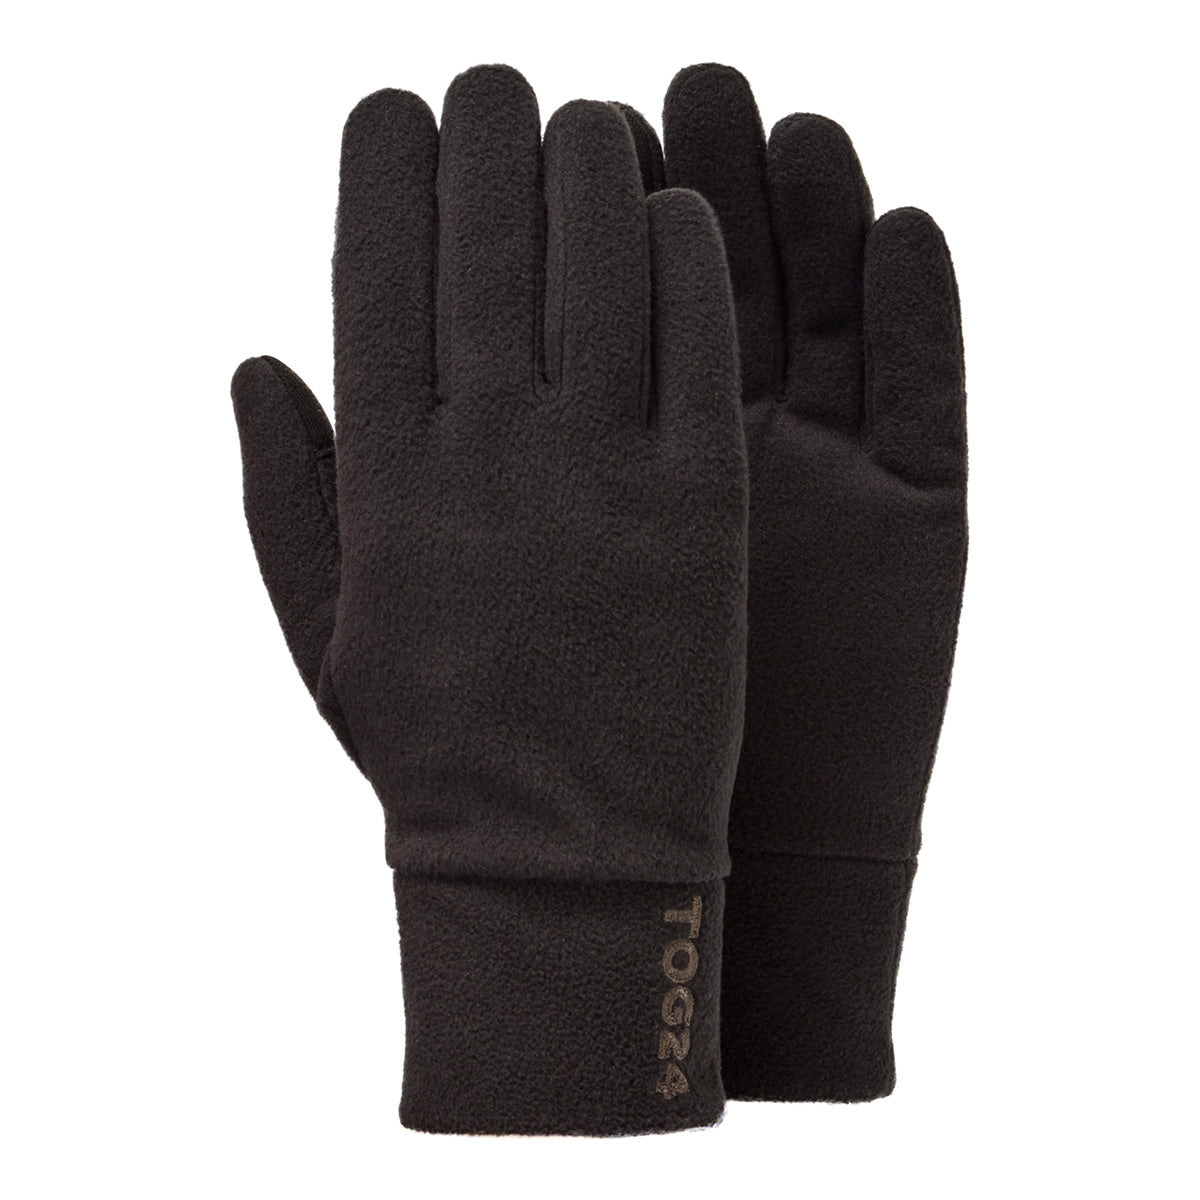 Elmet Microfleece Gloves - Black